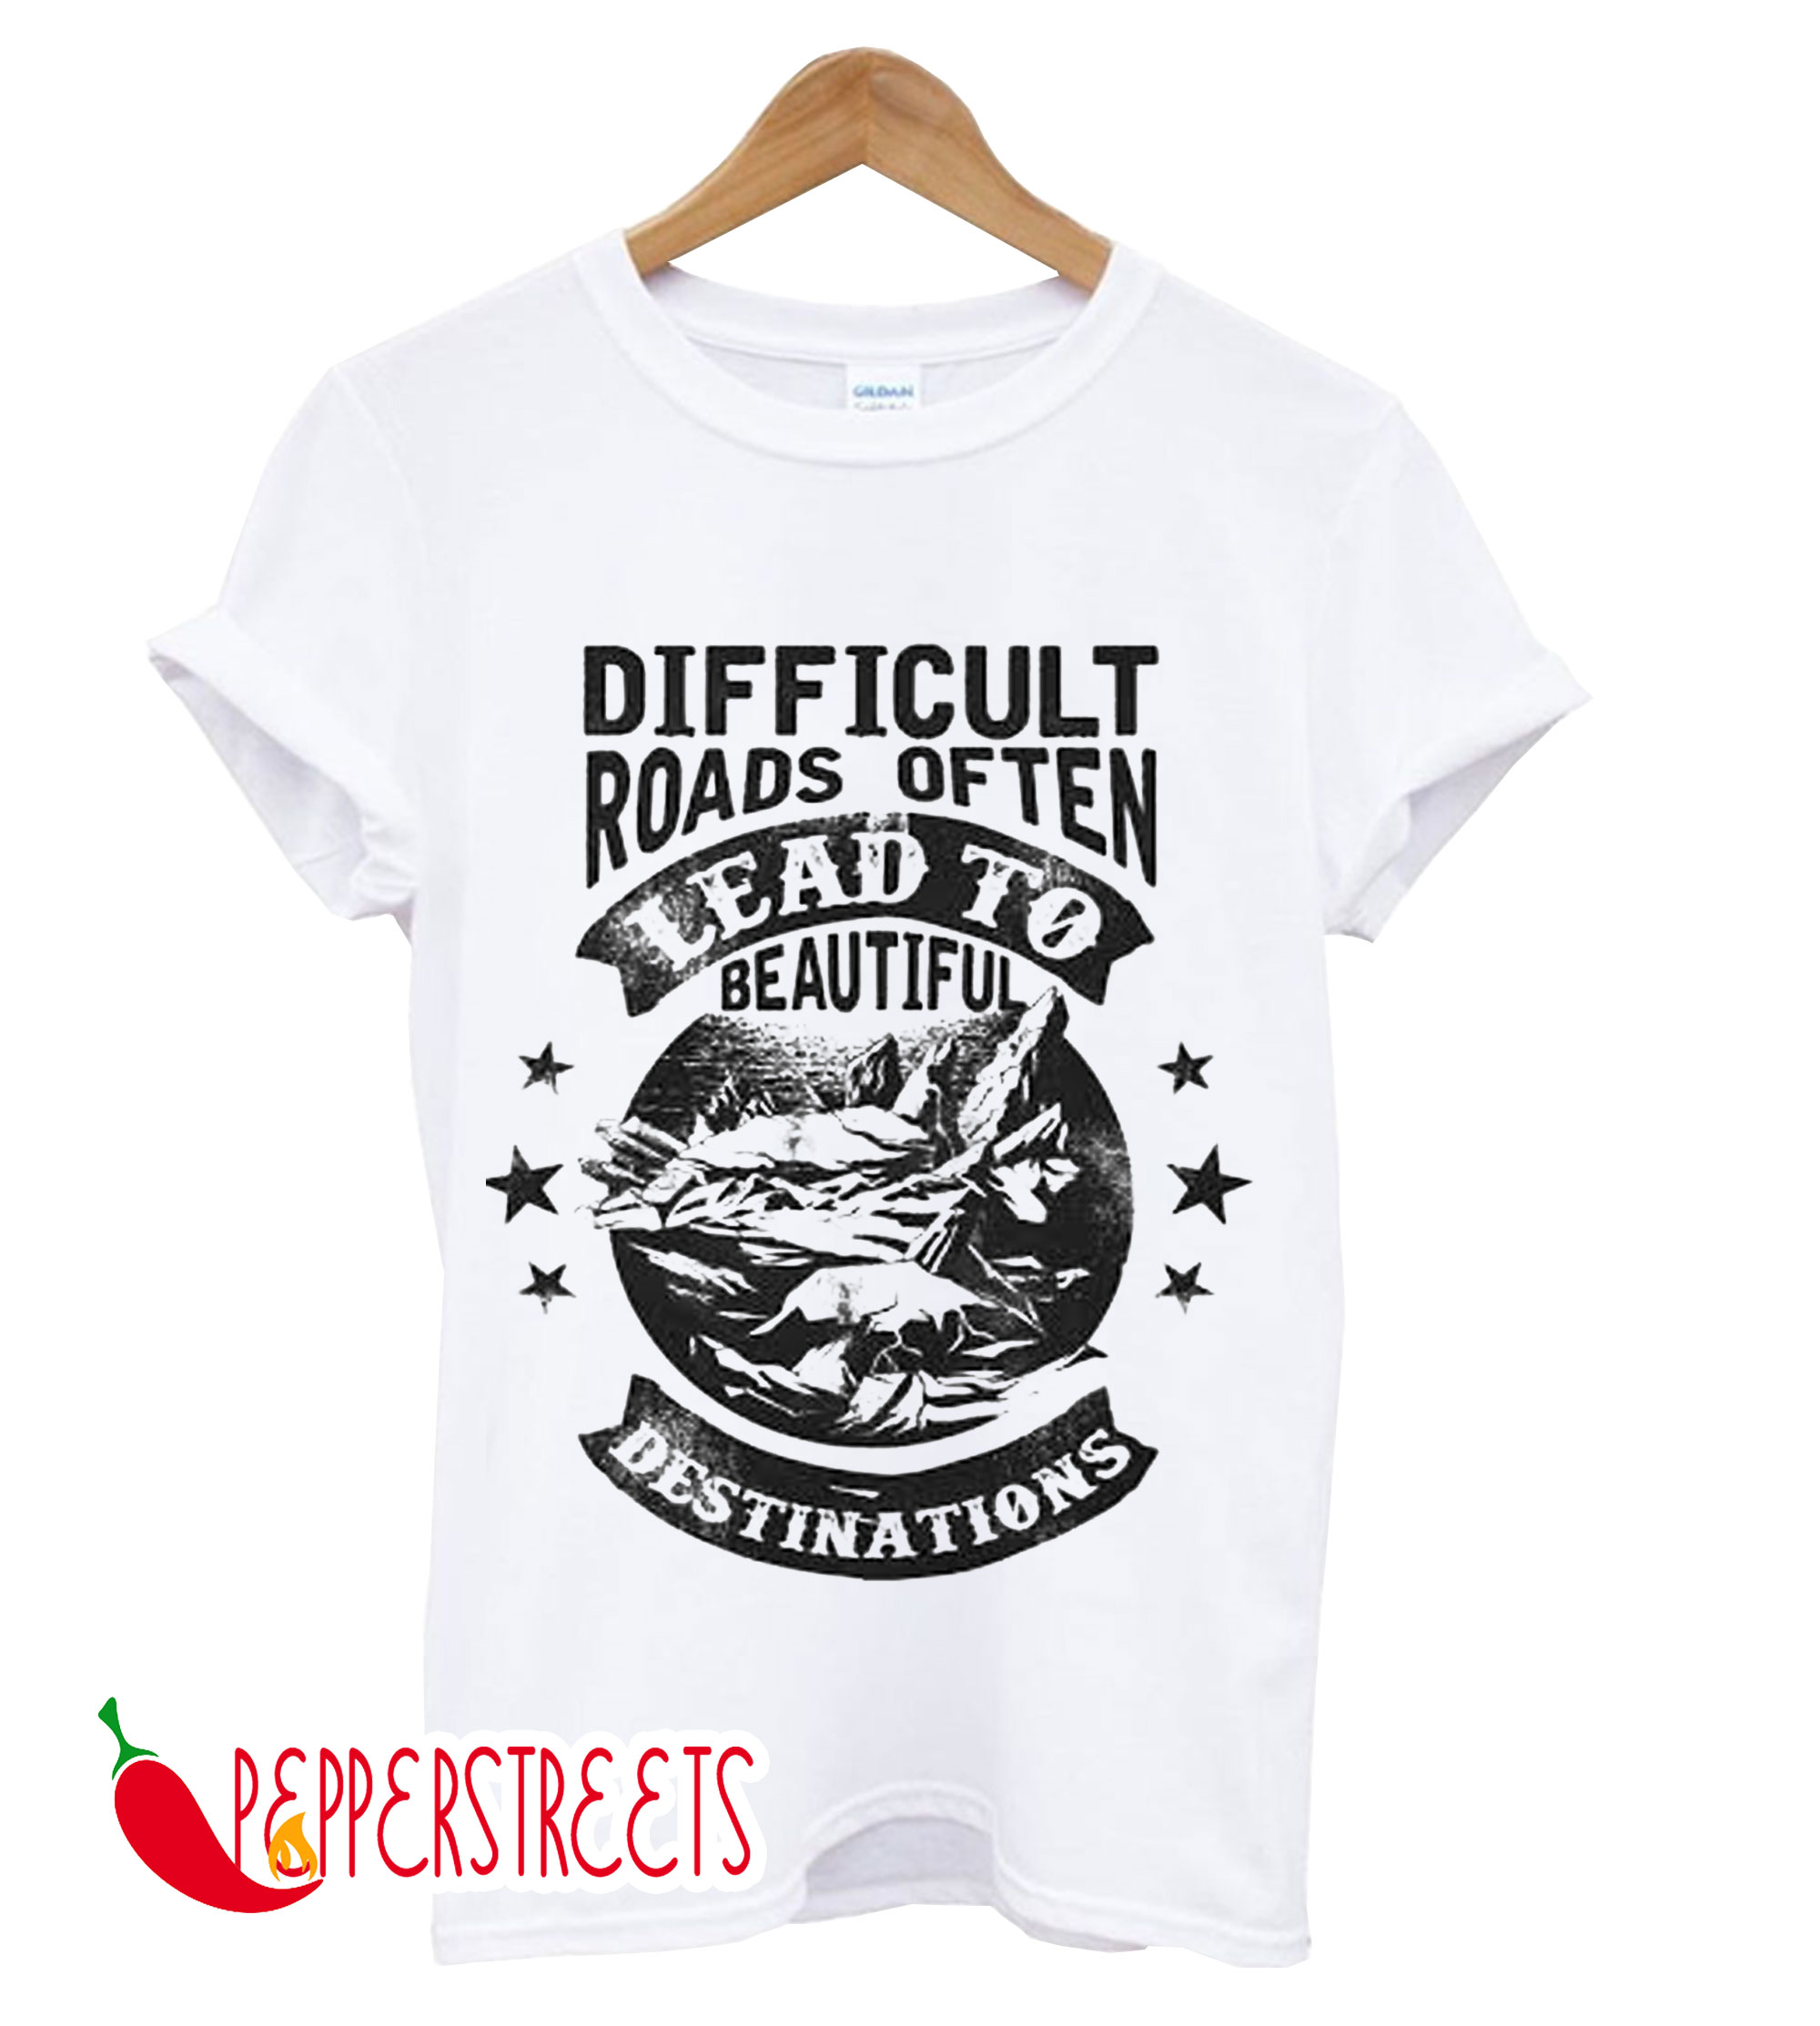 100 Designs CollectionT-Shirt